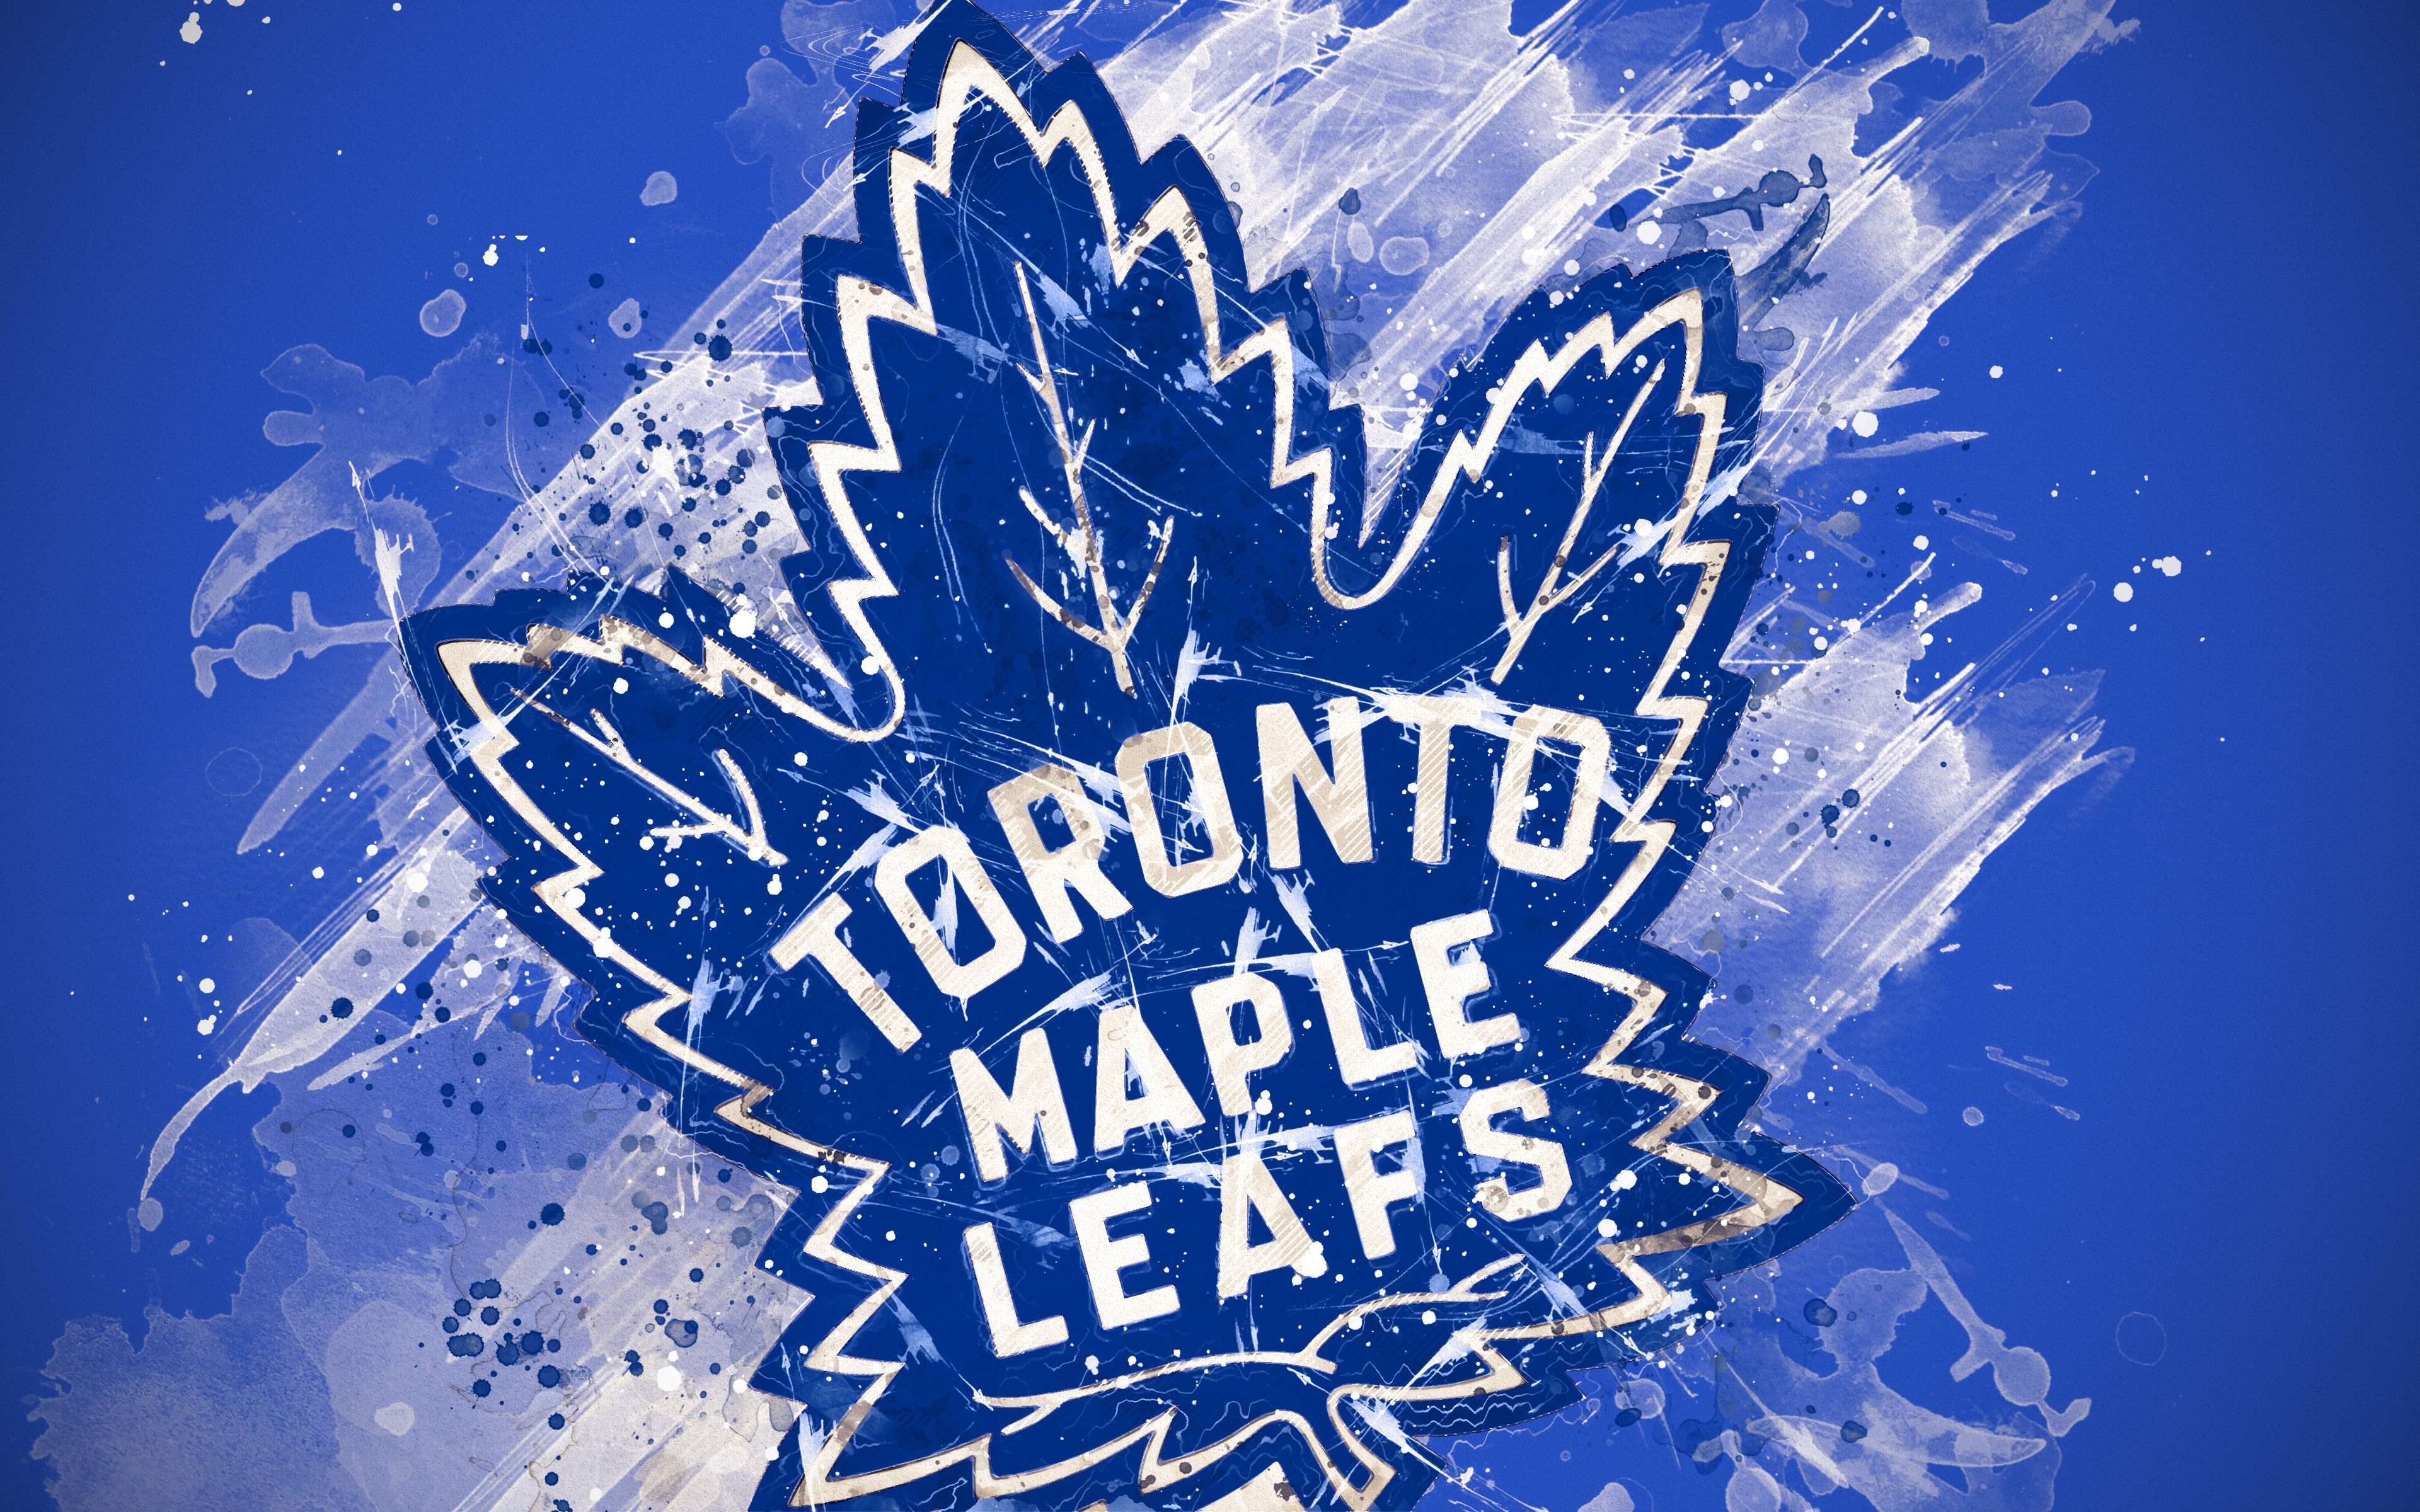 Toronto Maple Leafs 4k Ultra Hd Wallpaper Background Image